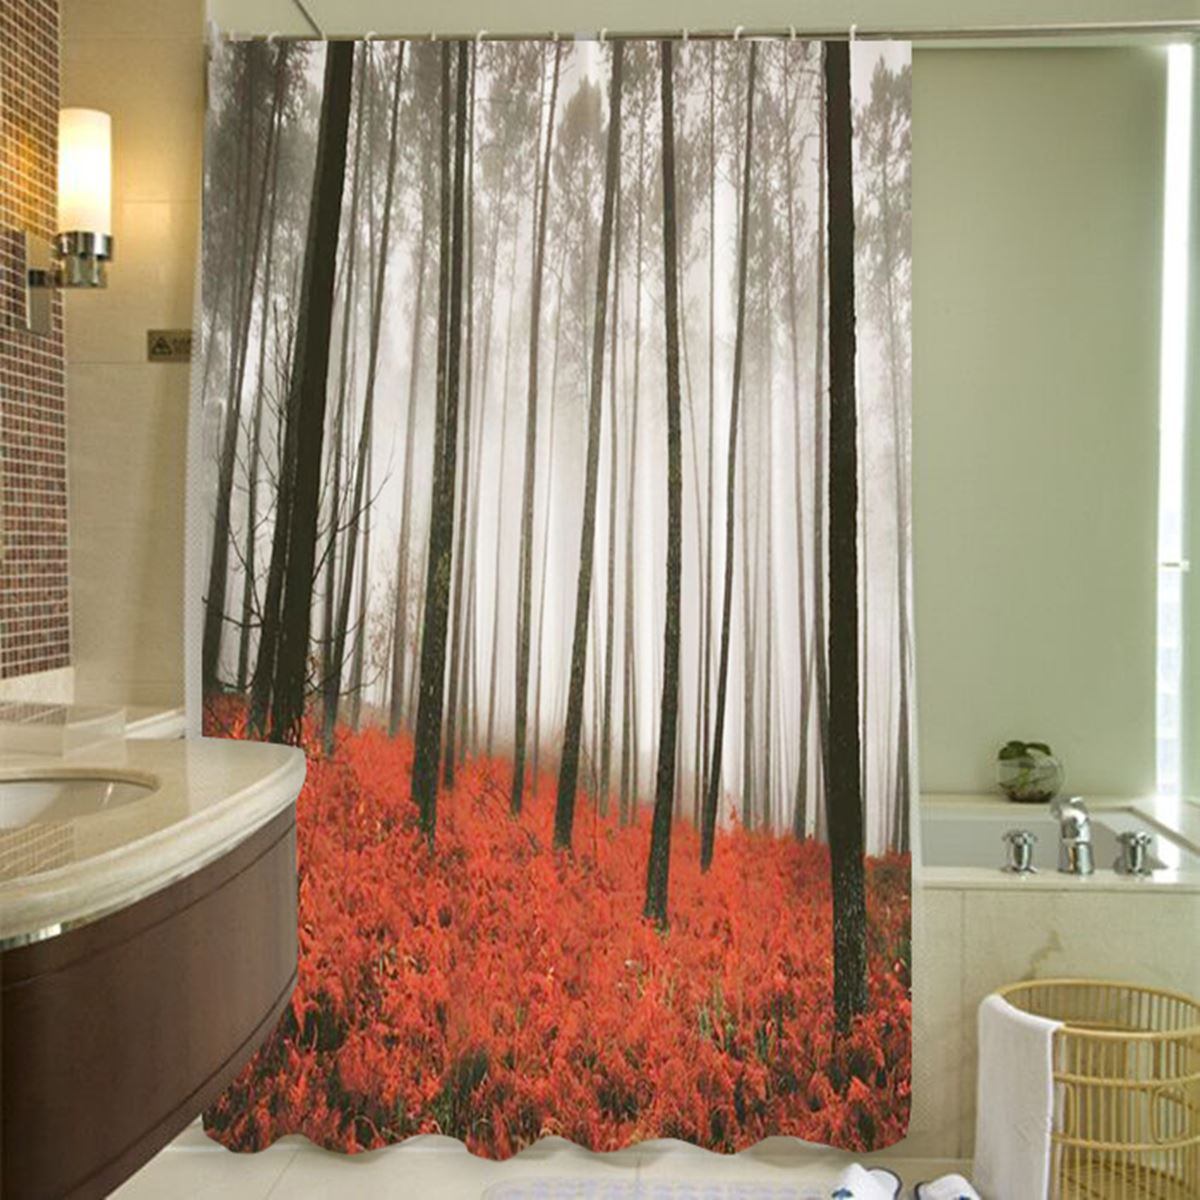 Curtains At Mr Price Home